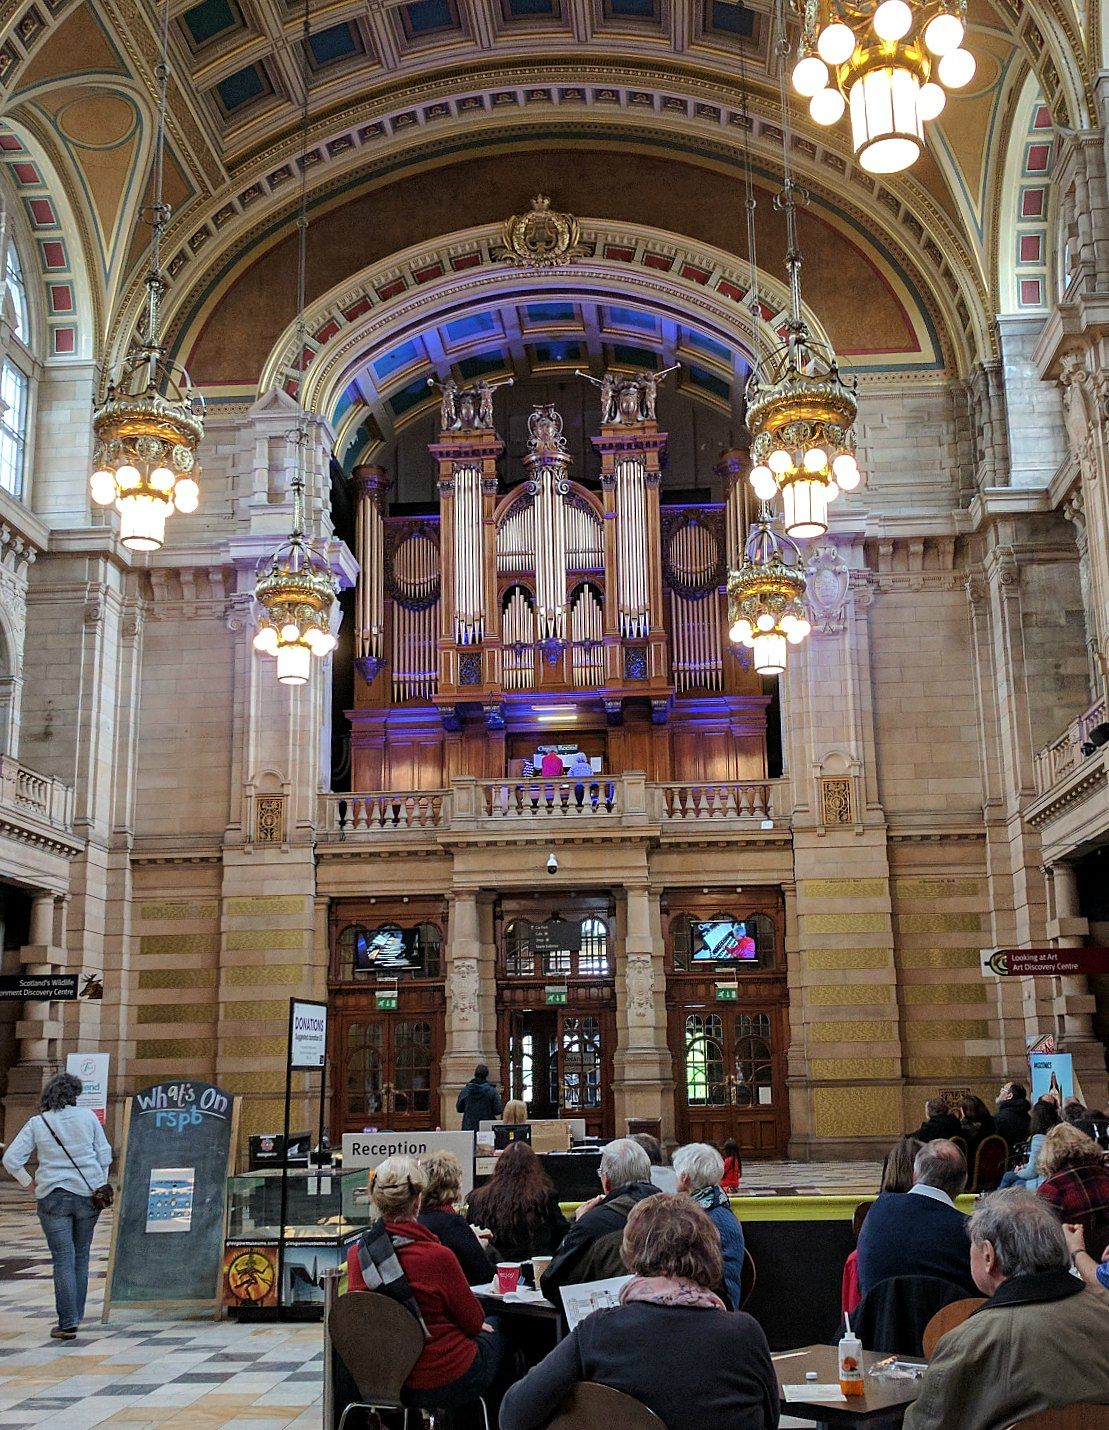 Organ recital at the Kelvingrove